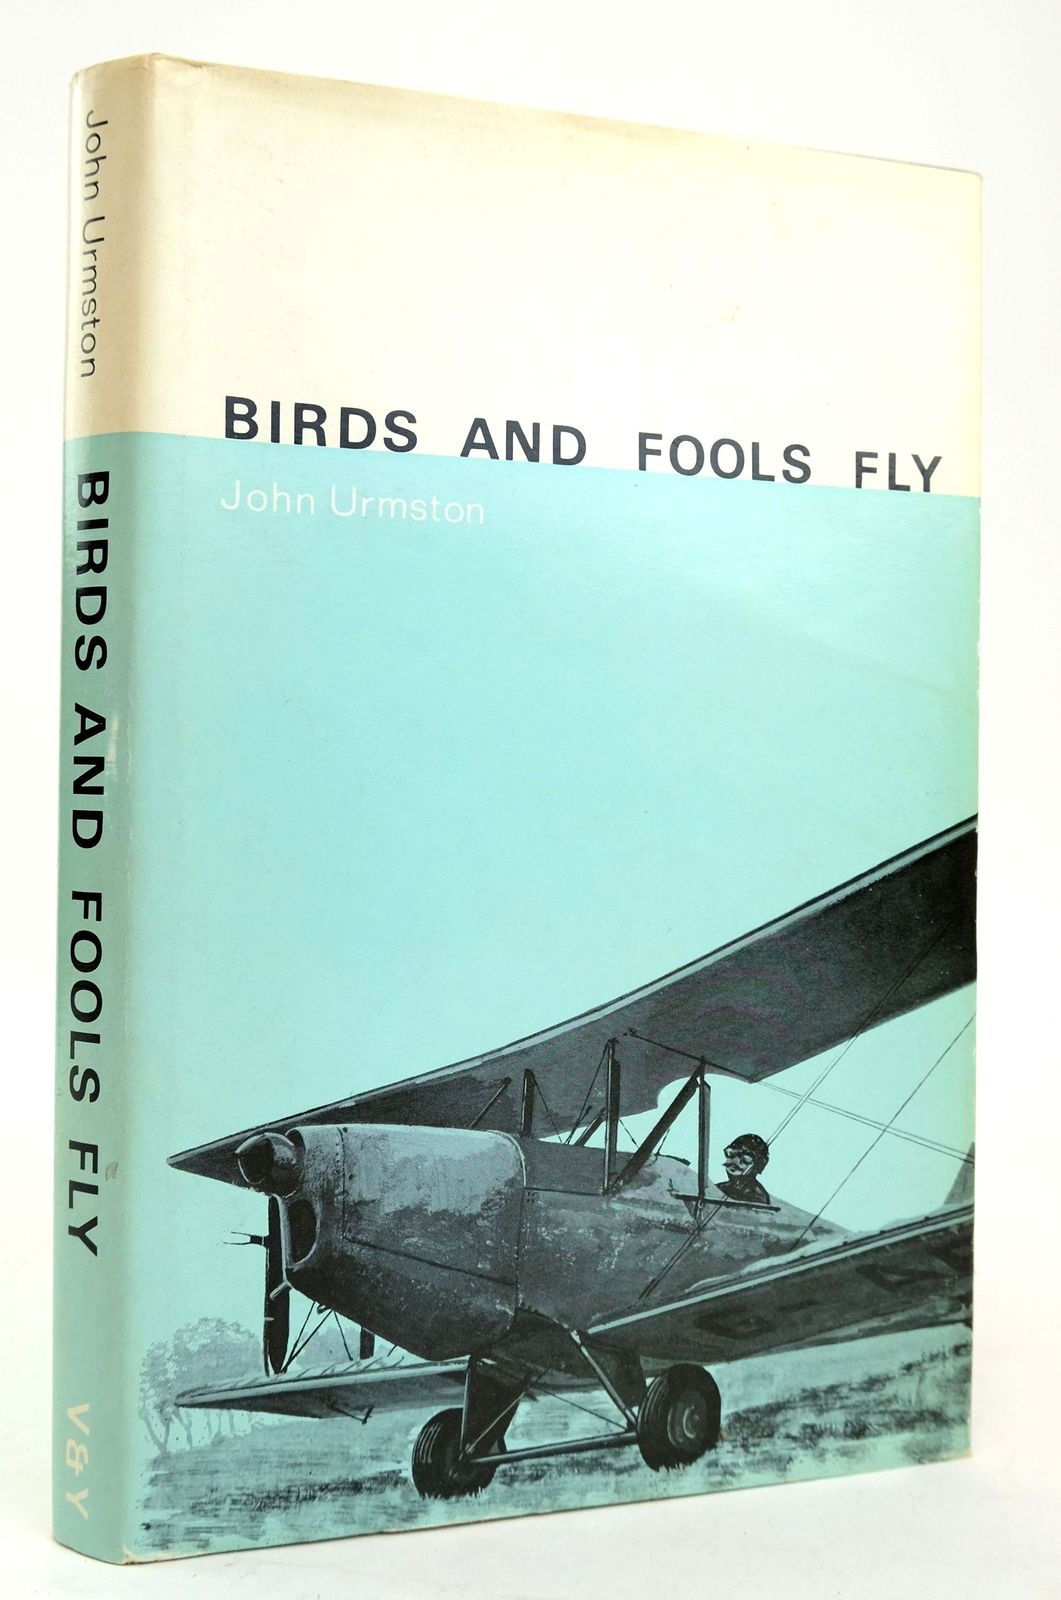 Photo of BIRDS AND FOOLS FLY written by Urmston, John published by Vernon & Yates (STOCK CODE: 1820199)  for sale by Stella & Rose's Books